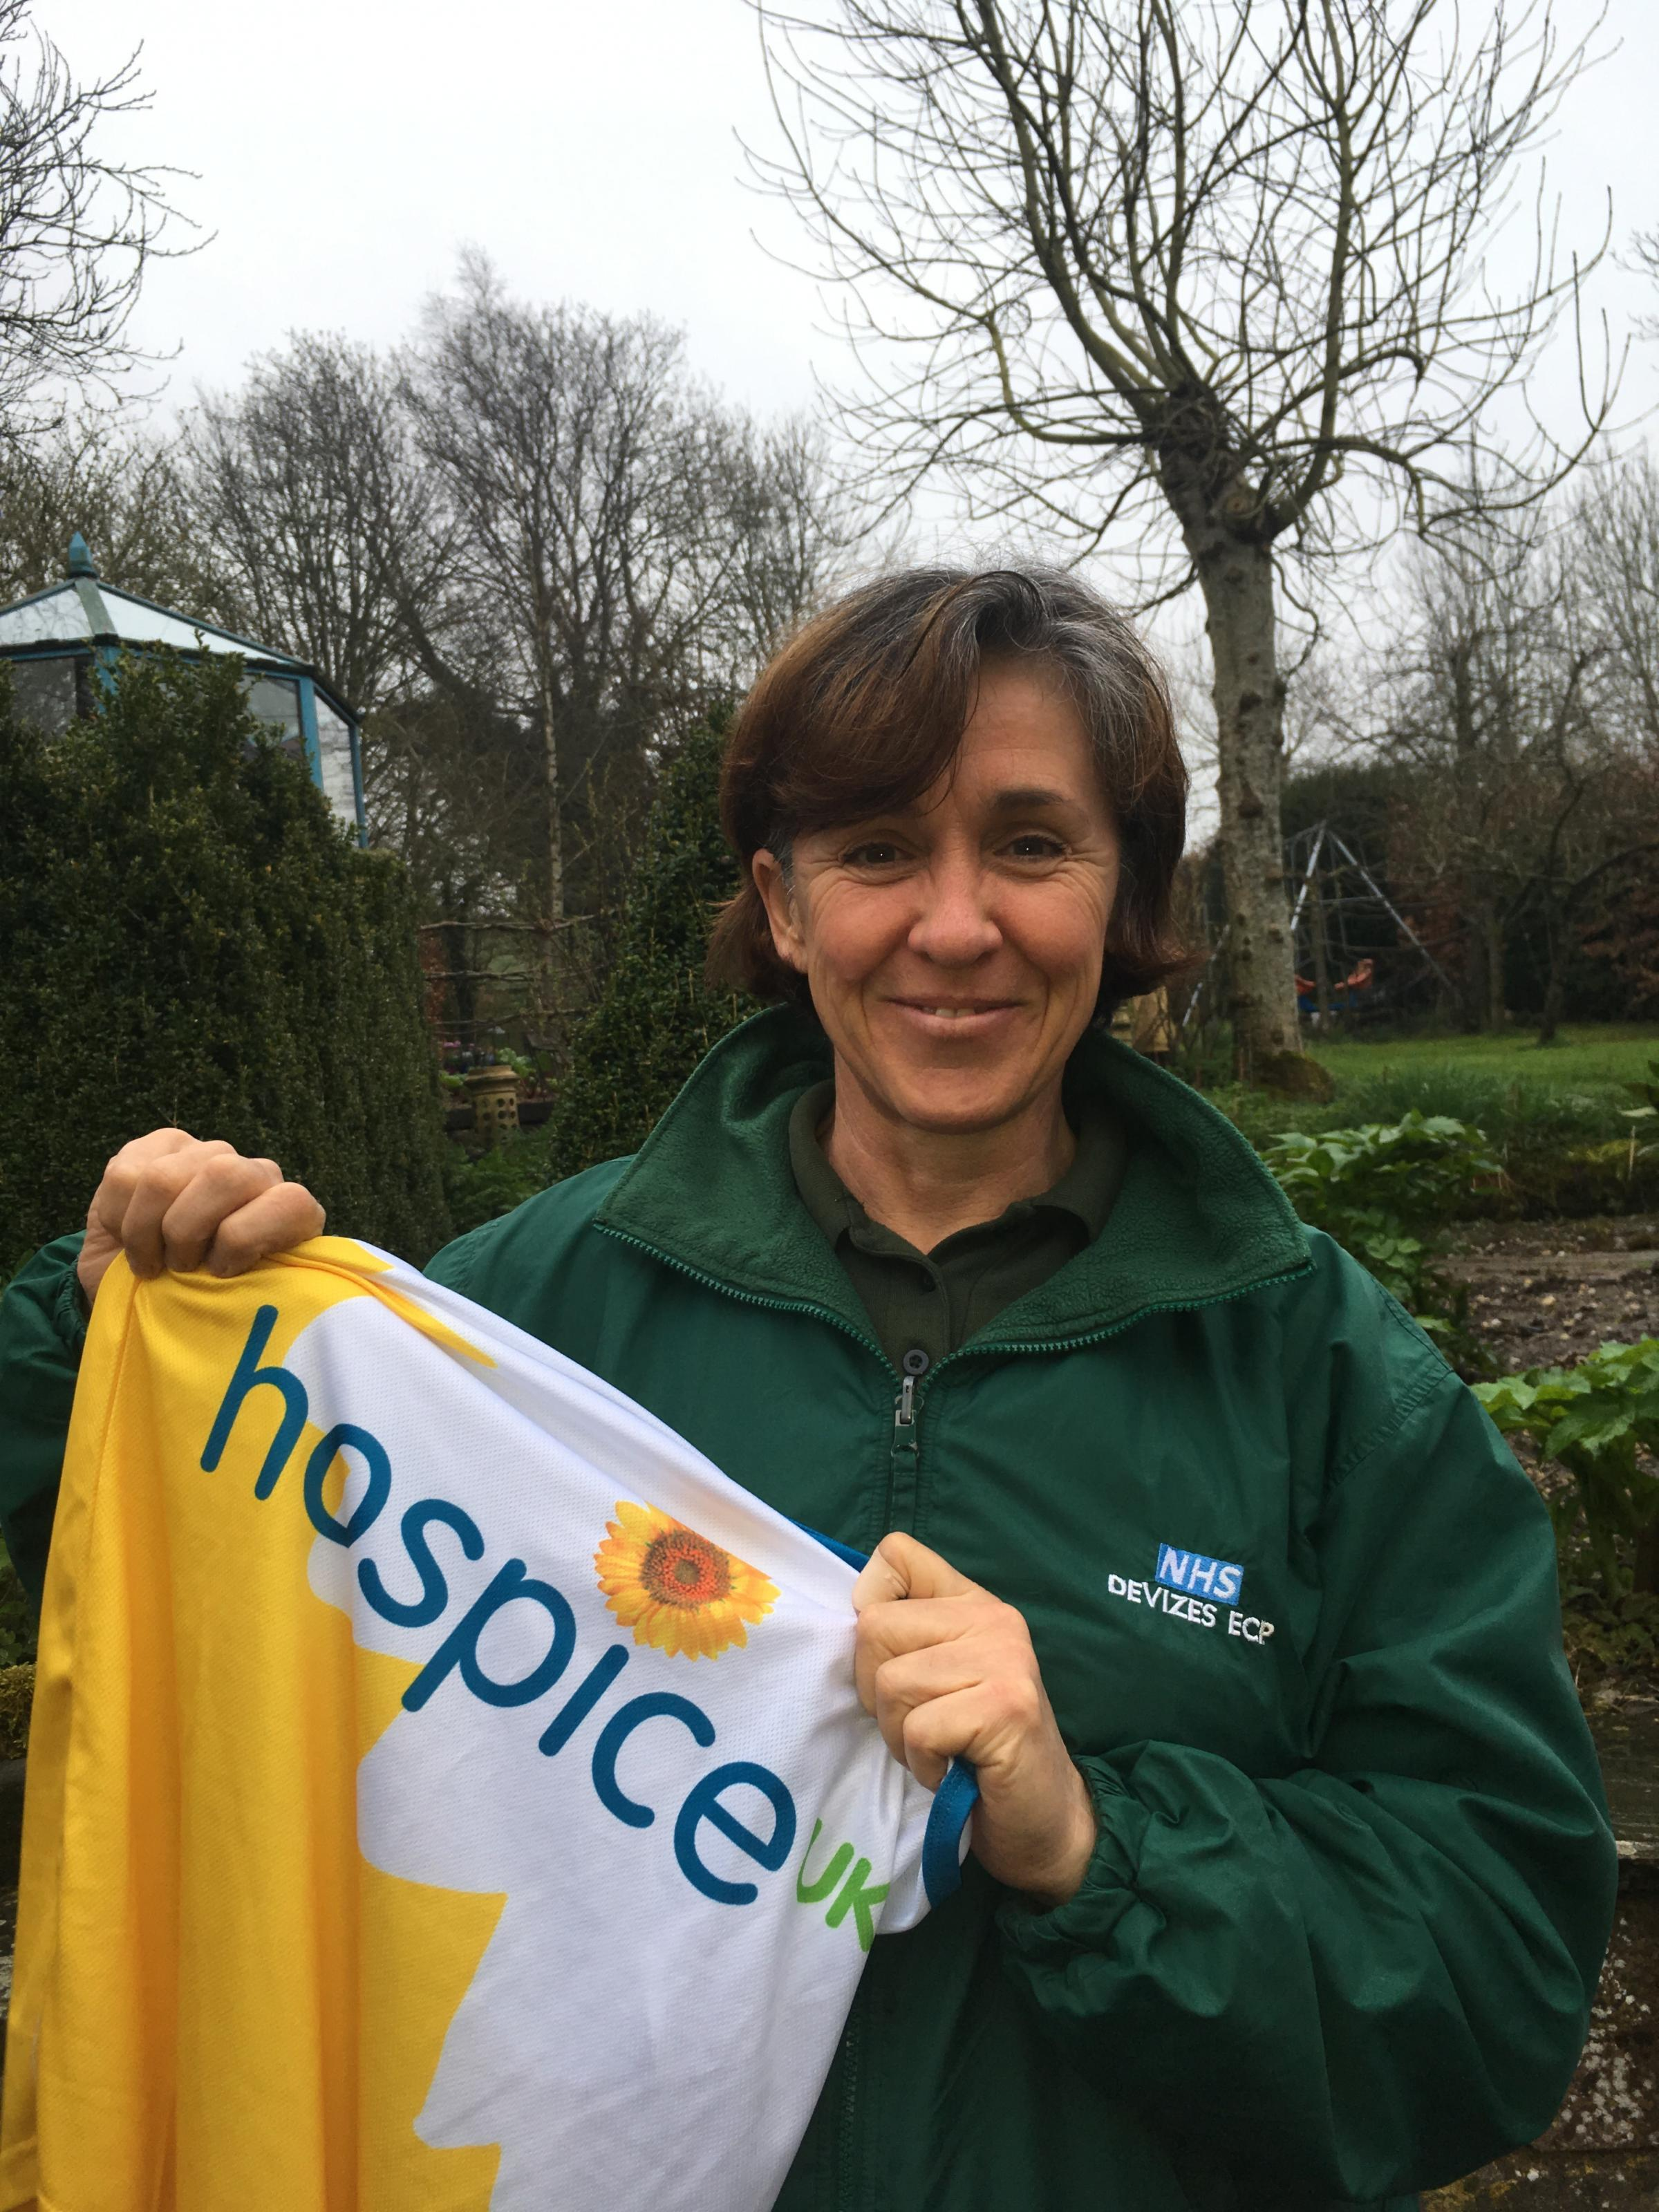 Kate Briscoe, community paramedic for Devizes is running the London Marathon